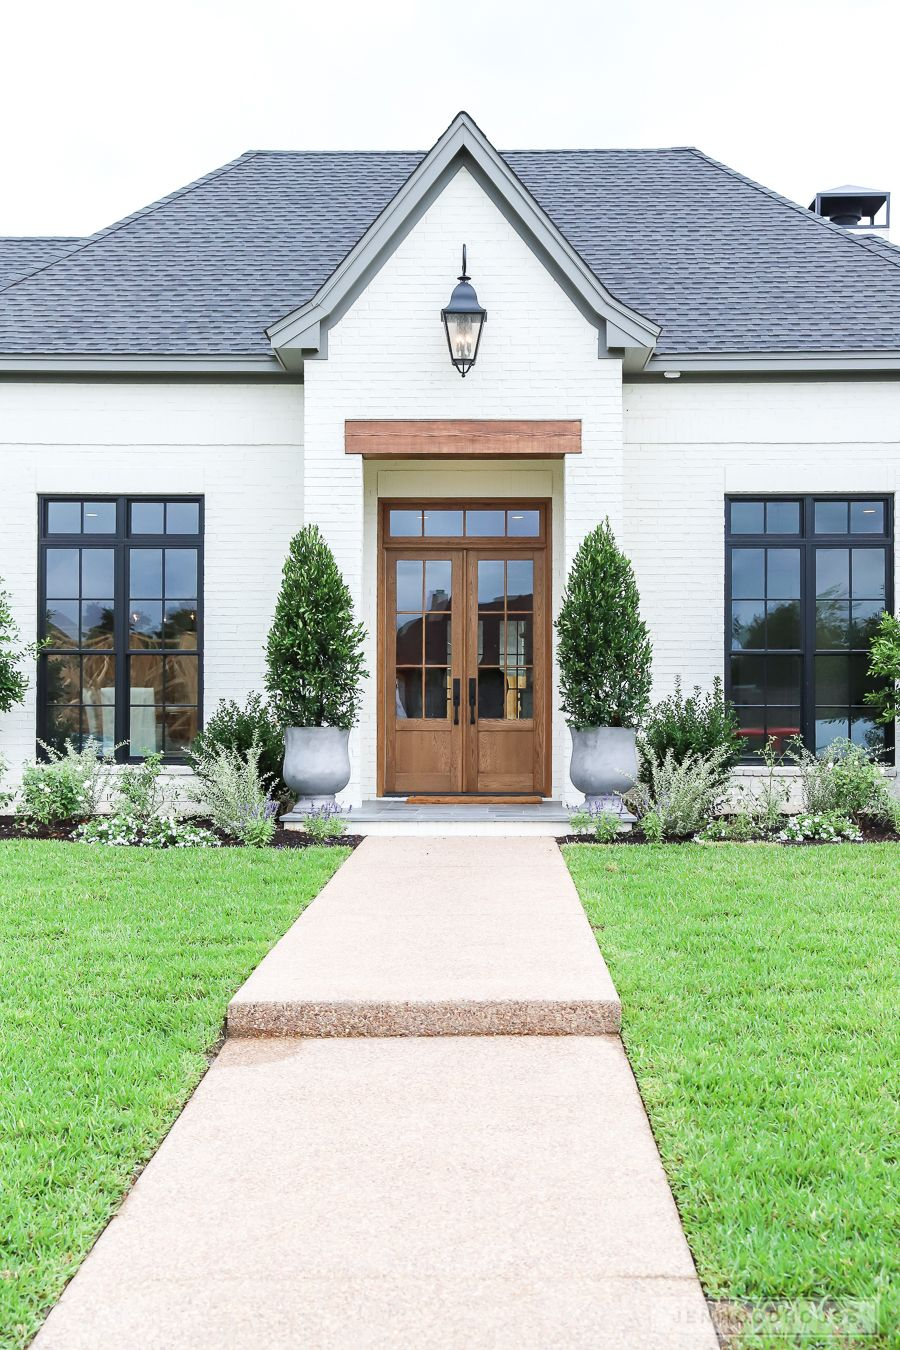 2018 Parade of Homes Waco Texas